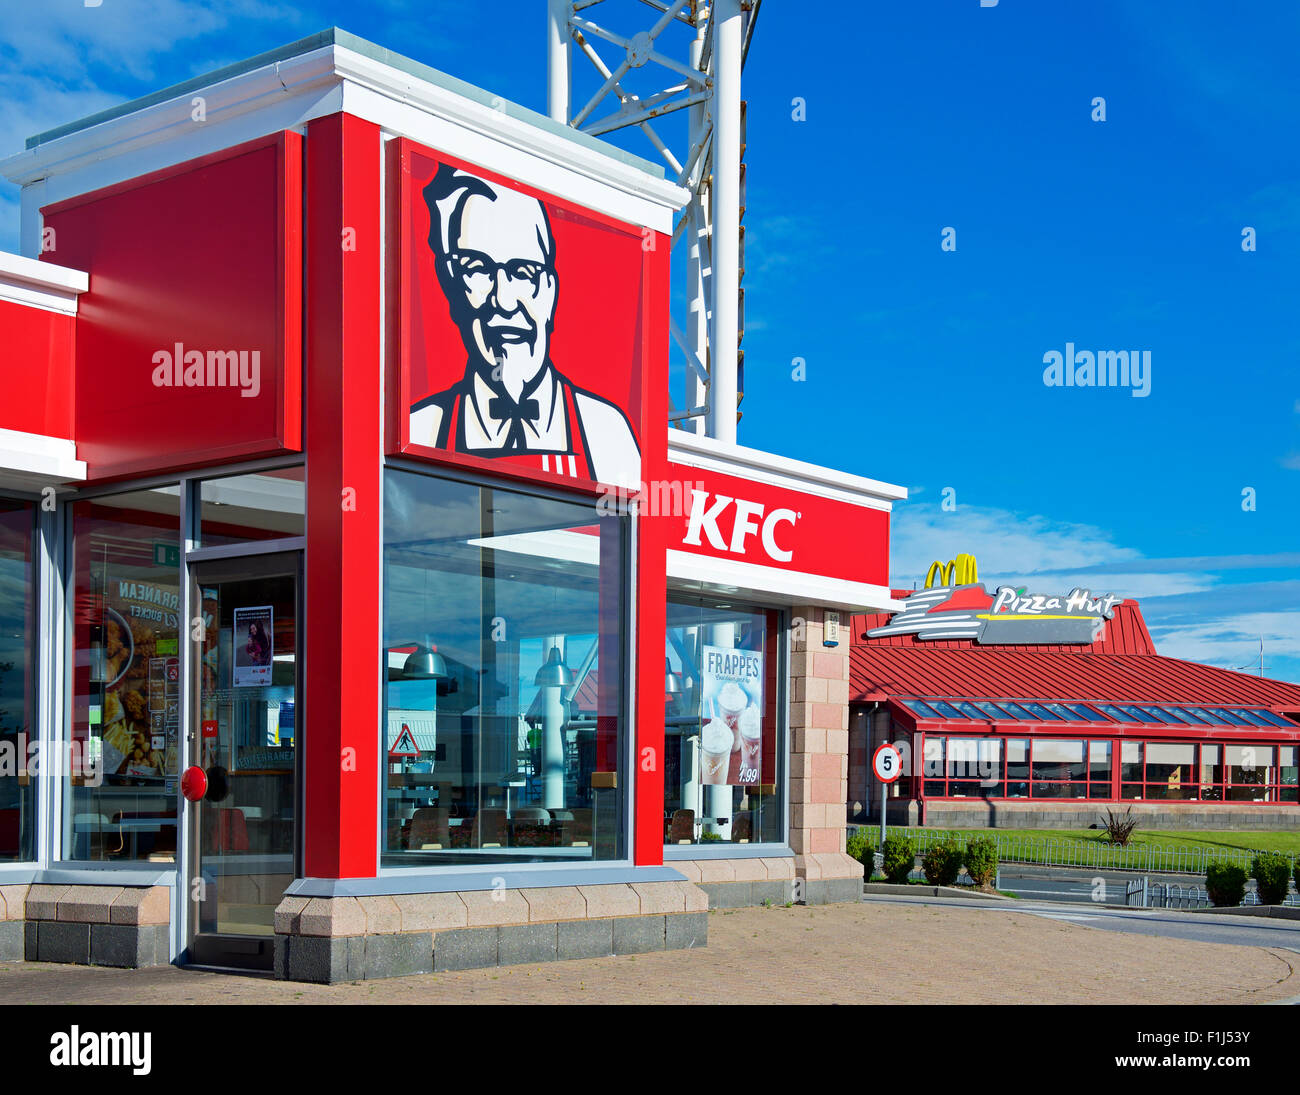 Branch of KFC, Kentucky Fried Chicken, in Barrow-in-Furness, Cumbria, England UK - Stock Image